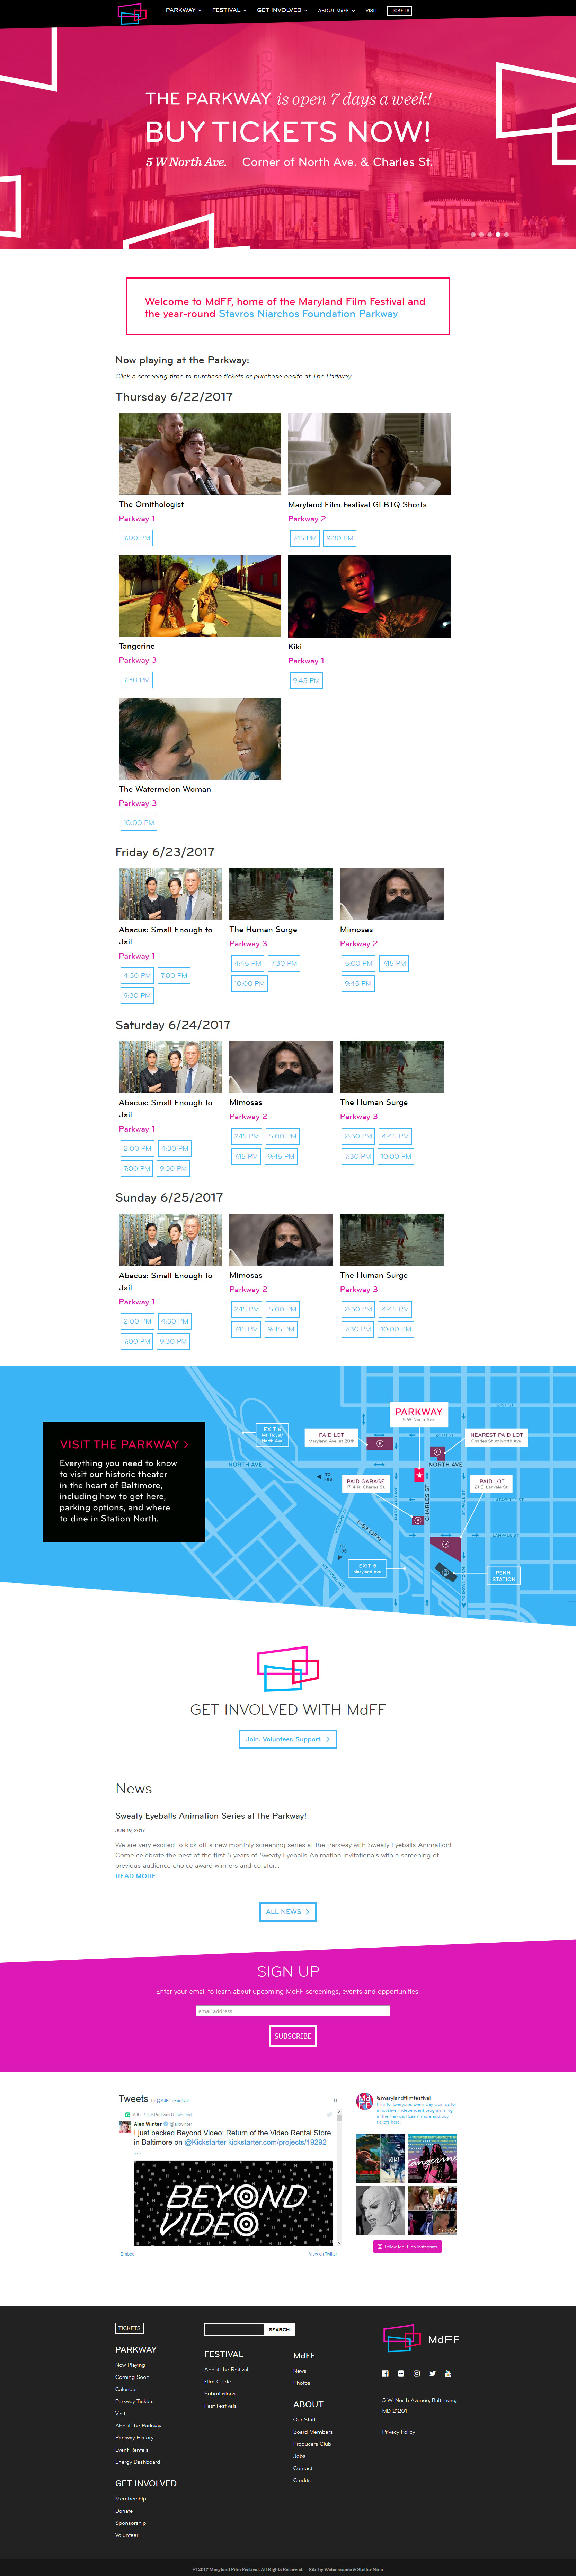 Maryland Film Festival Website Design